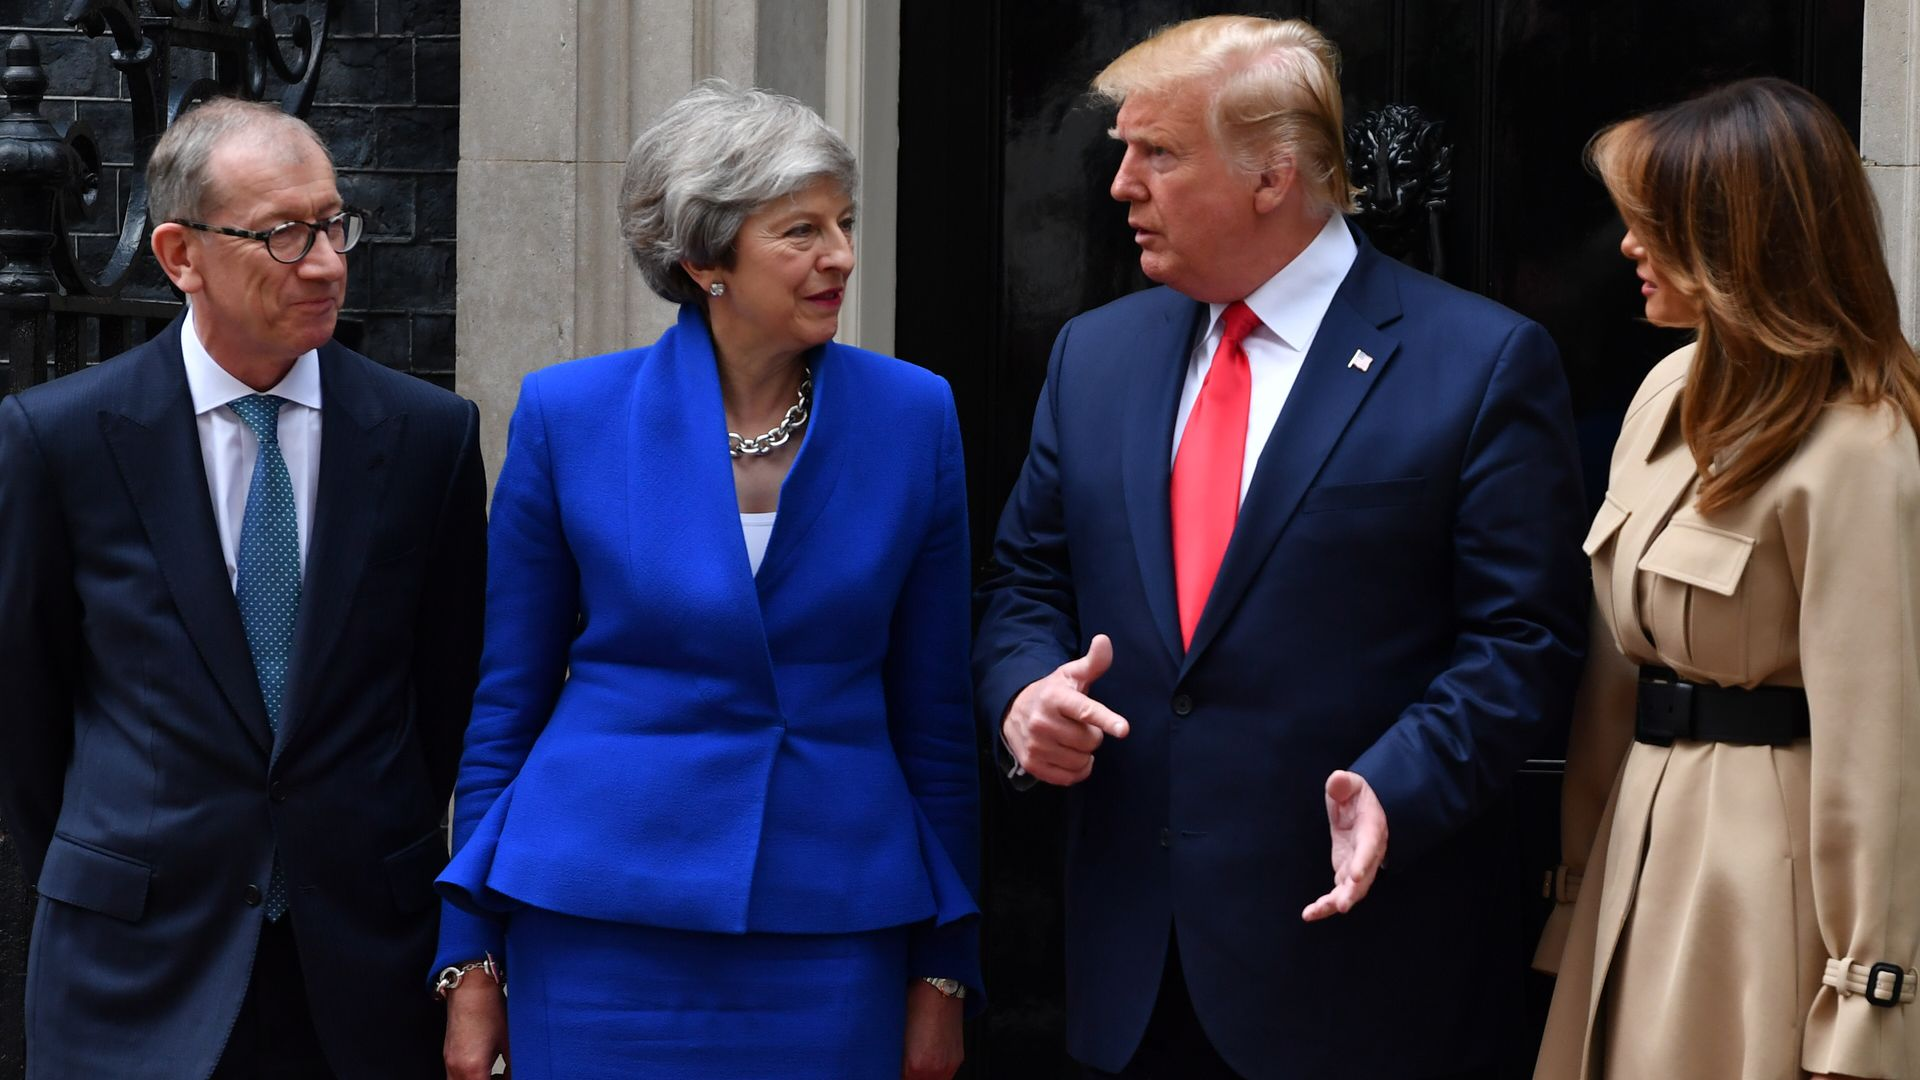 In this image, May and Trump talk while standing next to their spouses in front of Downing Street.